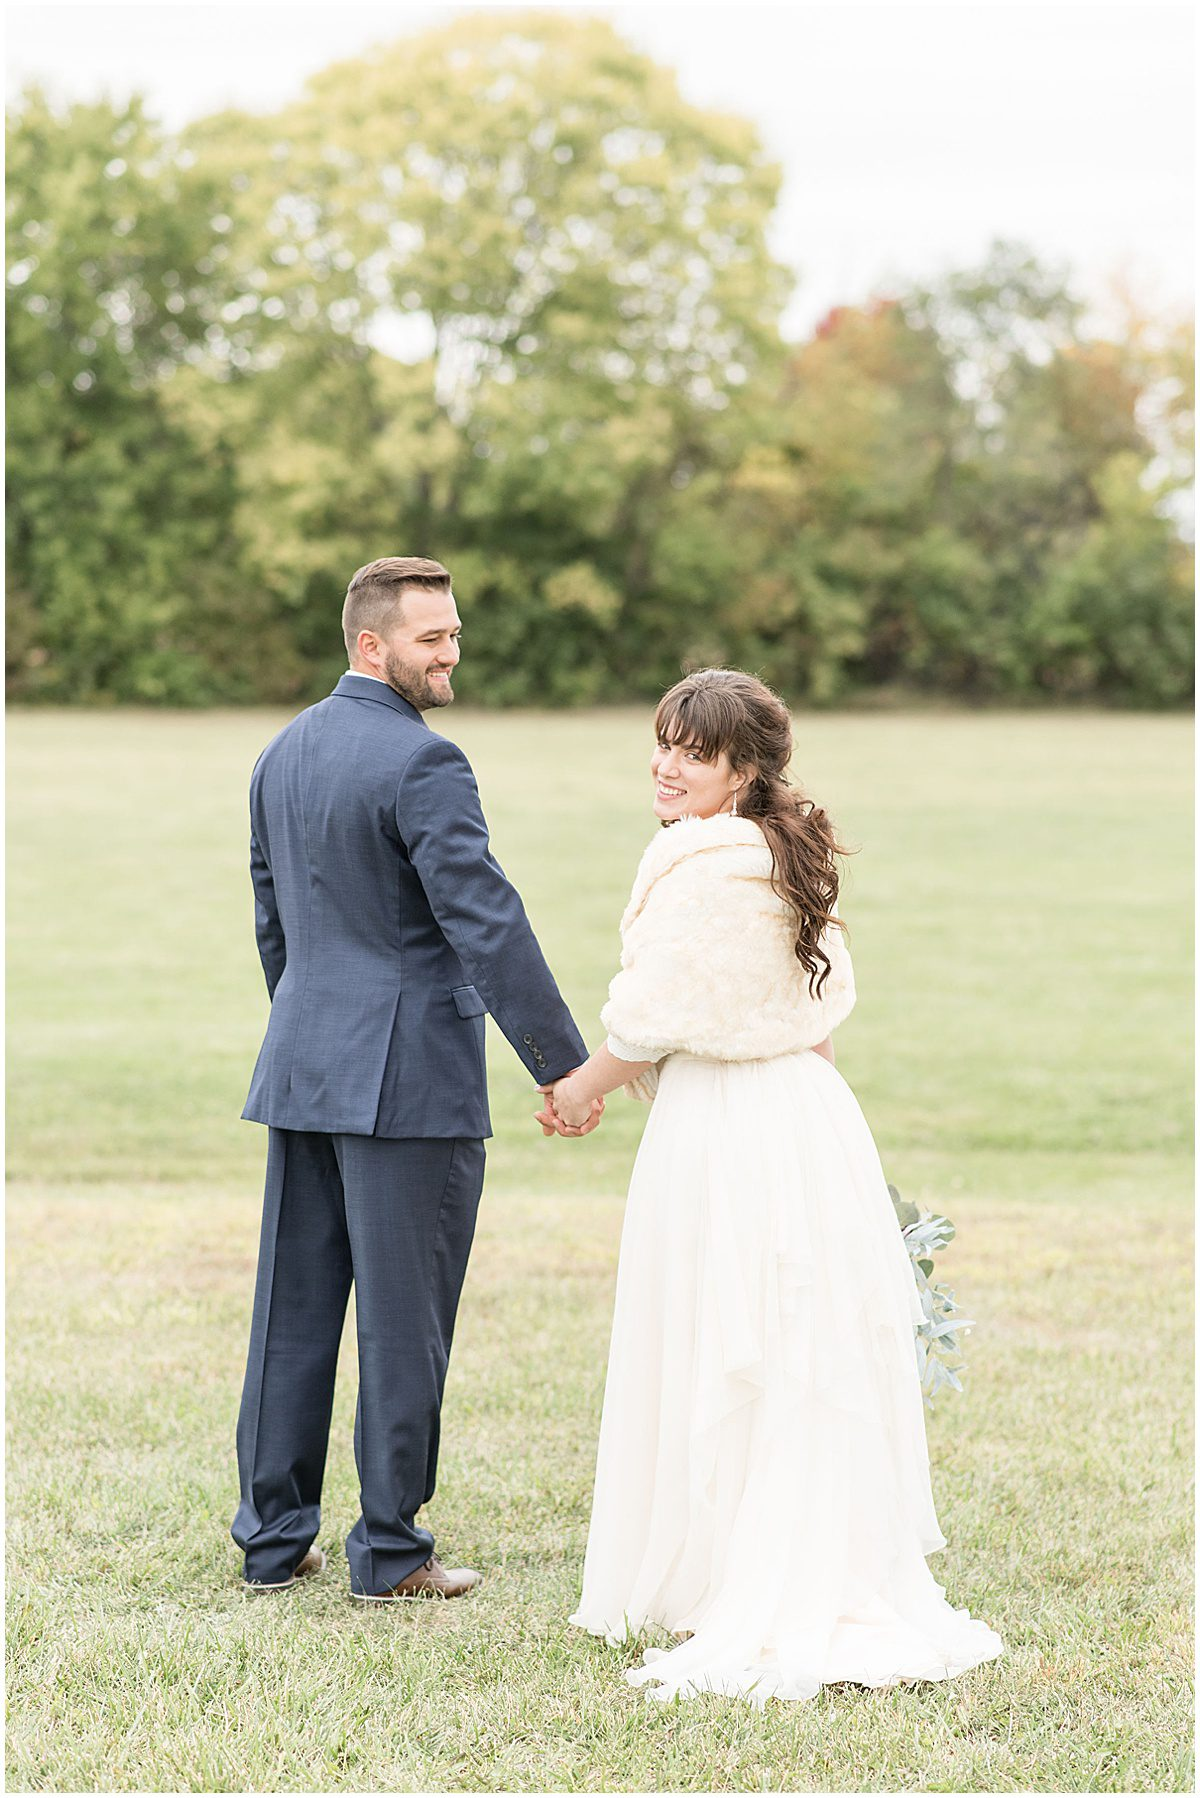 Just married photos after wedding at Innovation Church in Lafayette, Indiana by Victoria Rayburn Photography